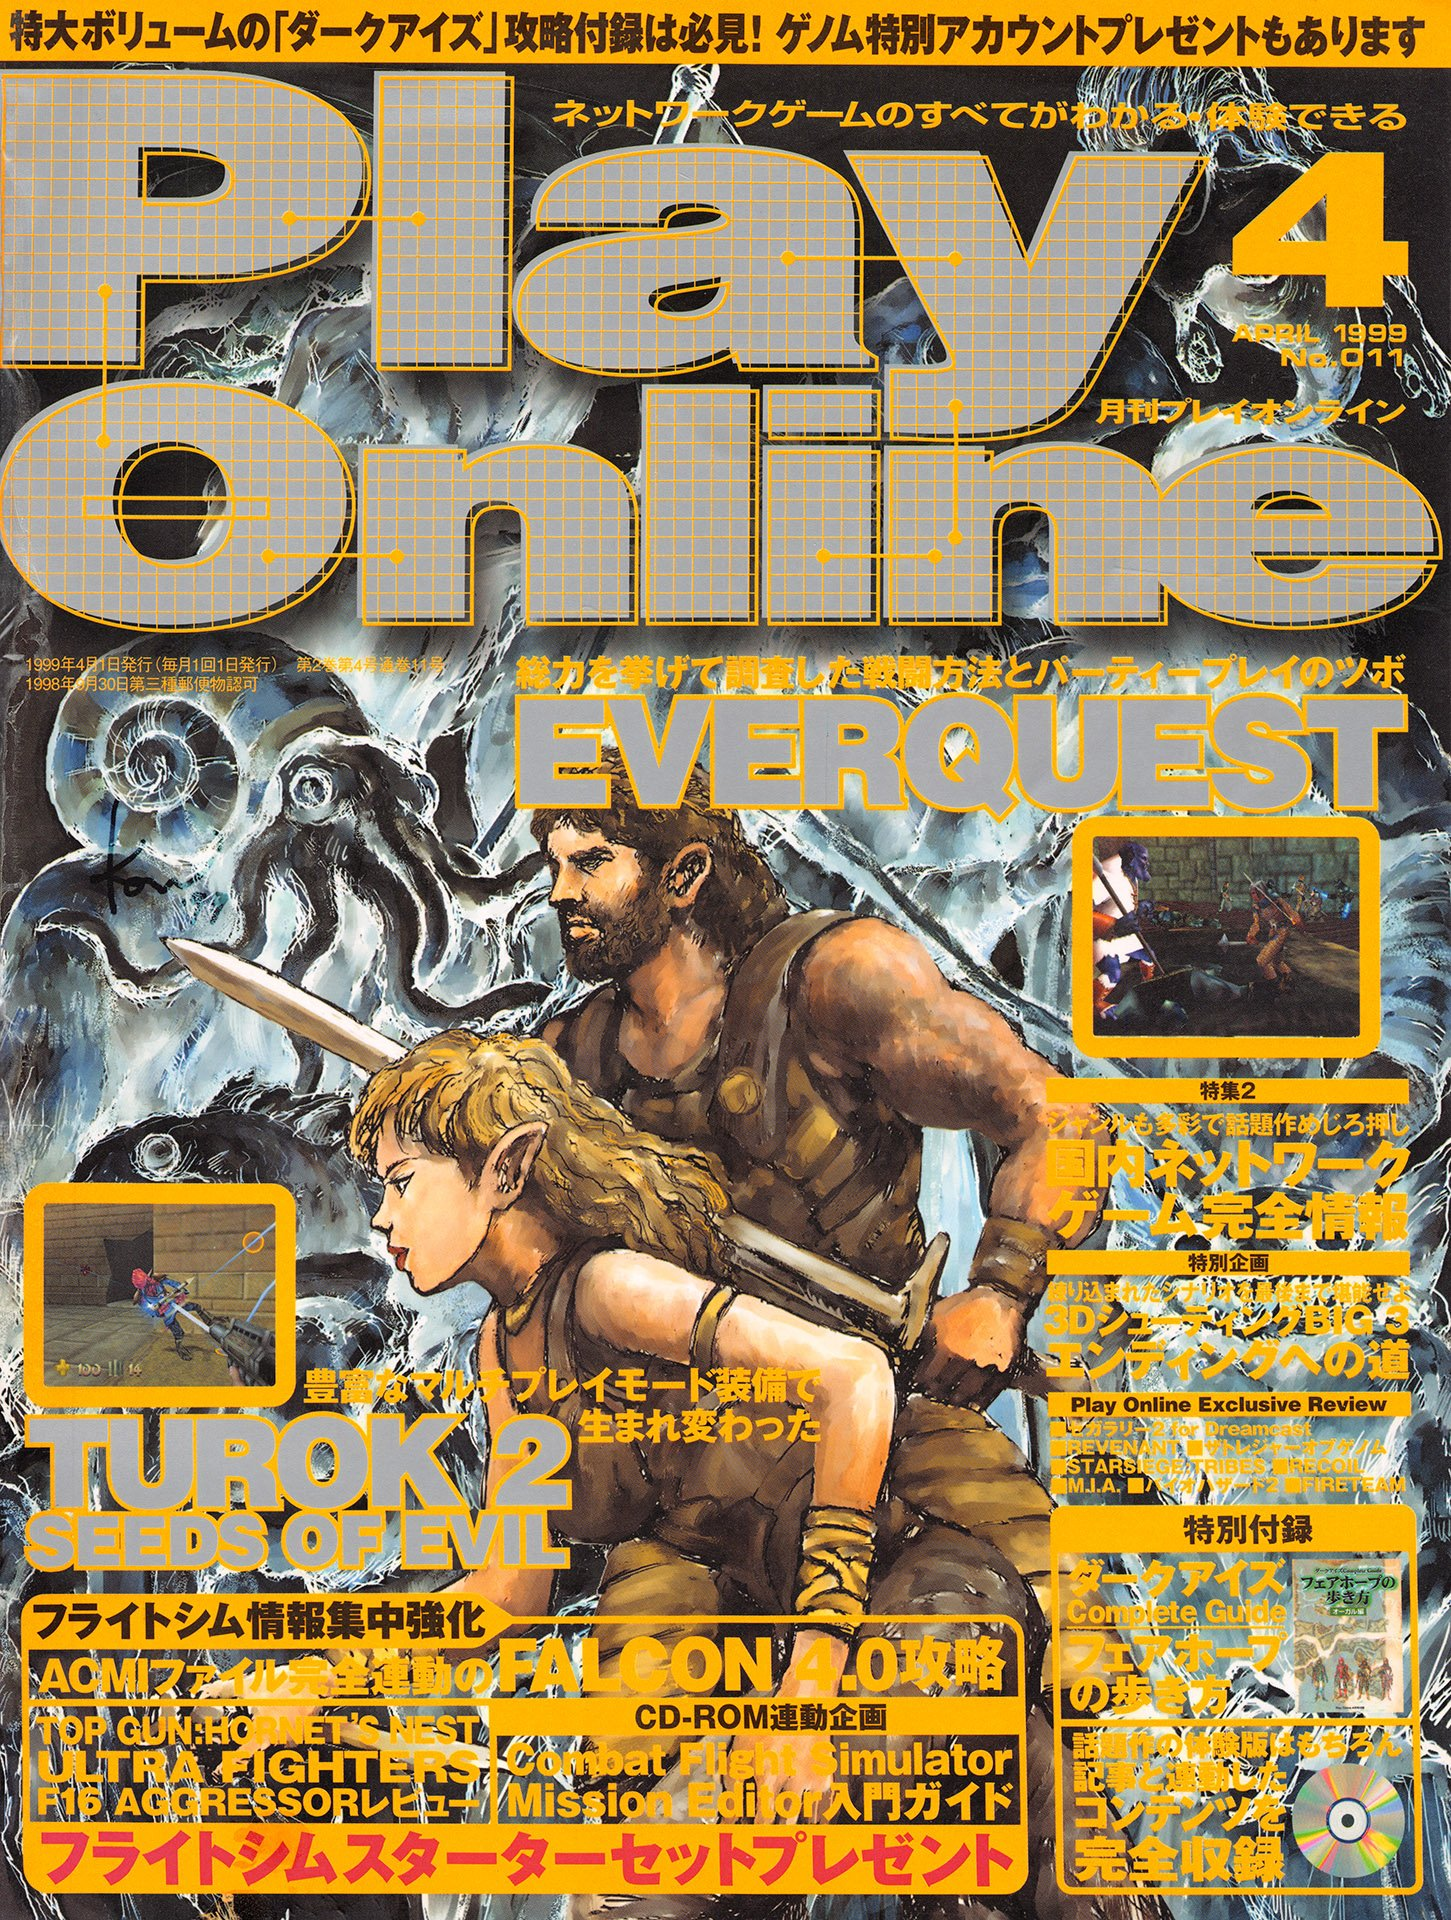 New Release - Play Online No.011 (April 1999)